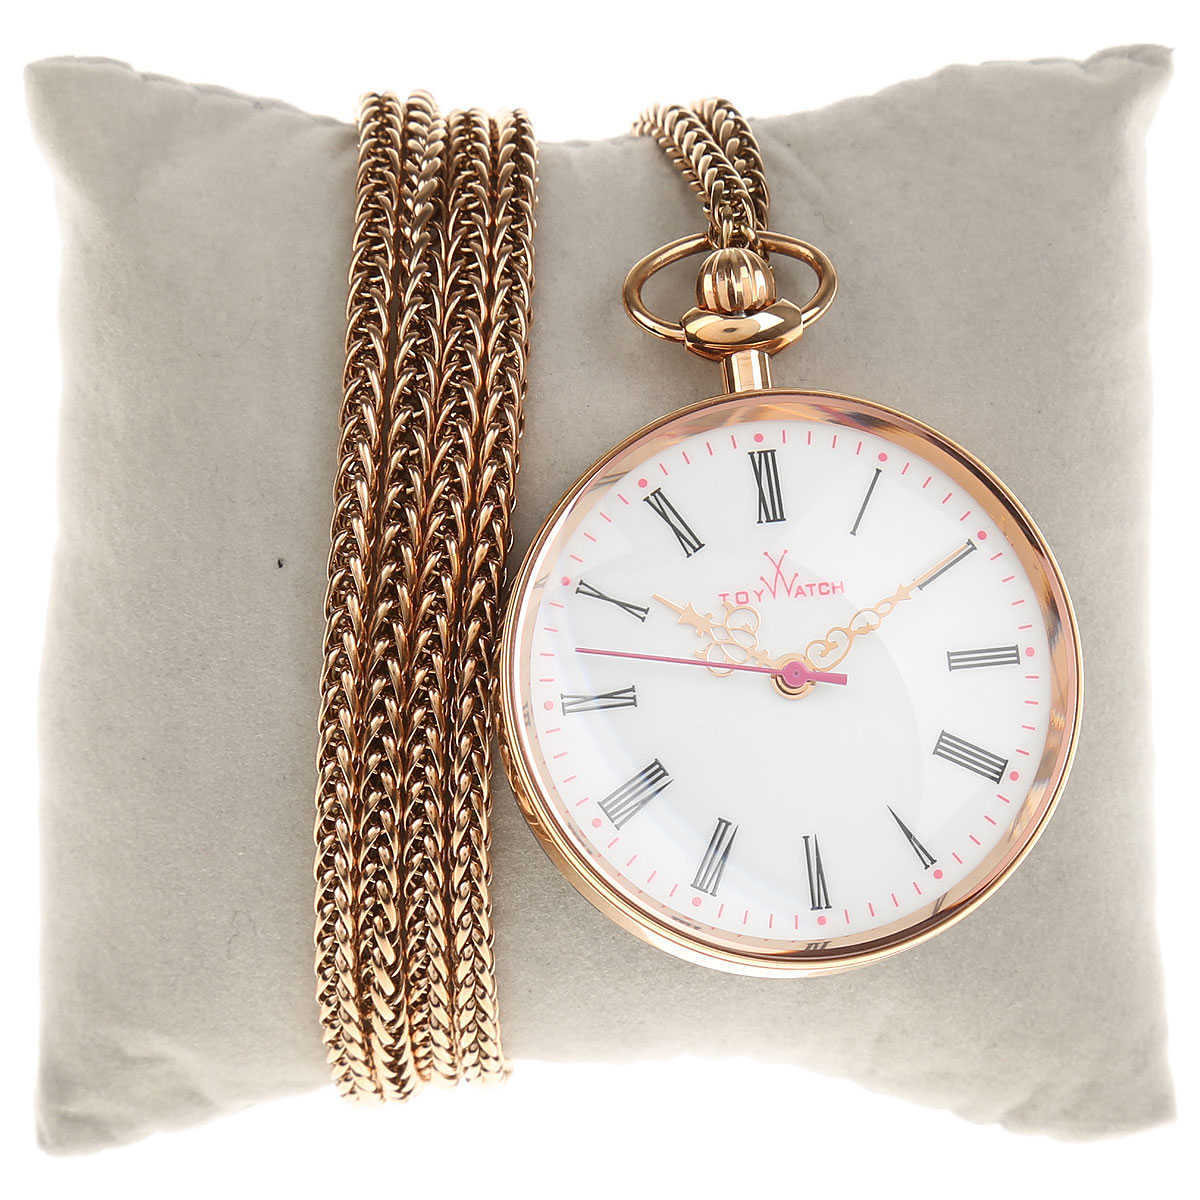 Toy Watch Watch for Women On Sale Gold - GOOFASH